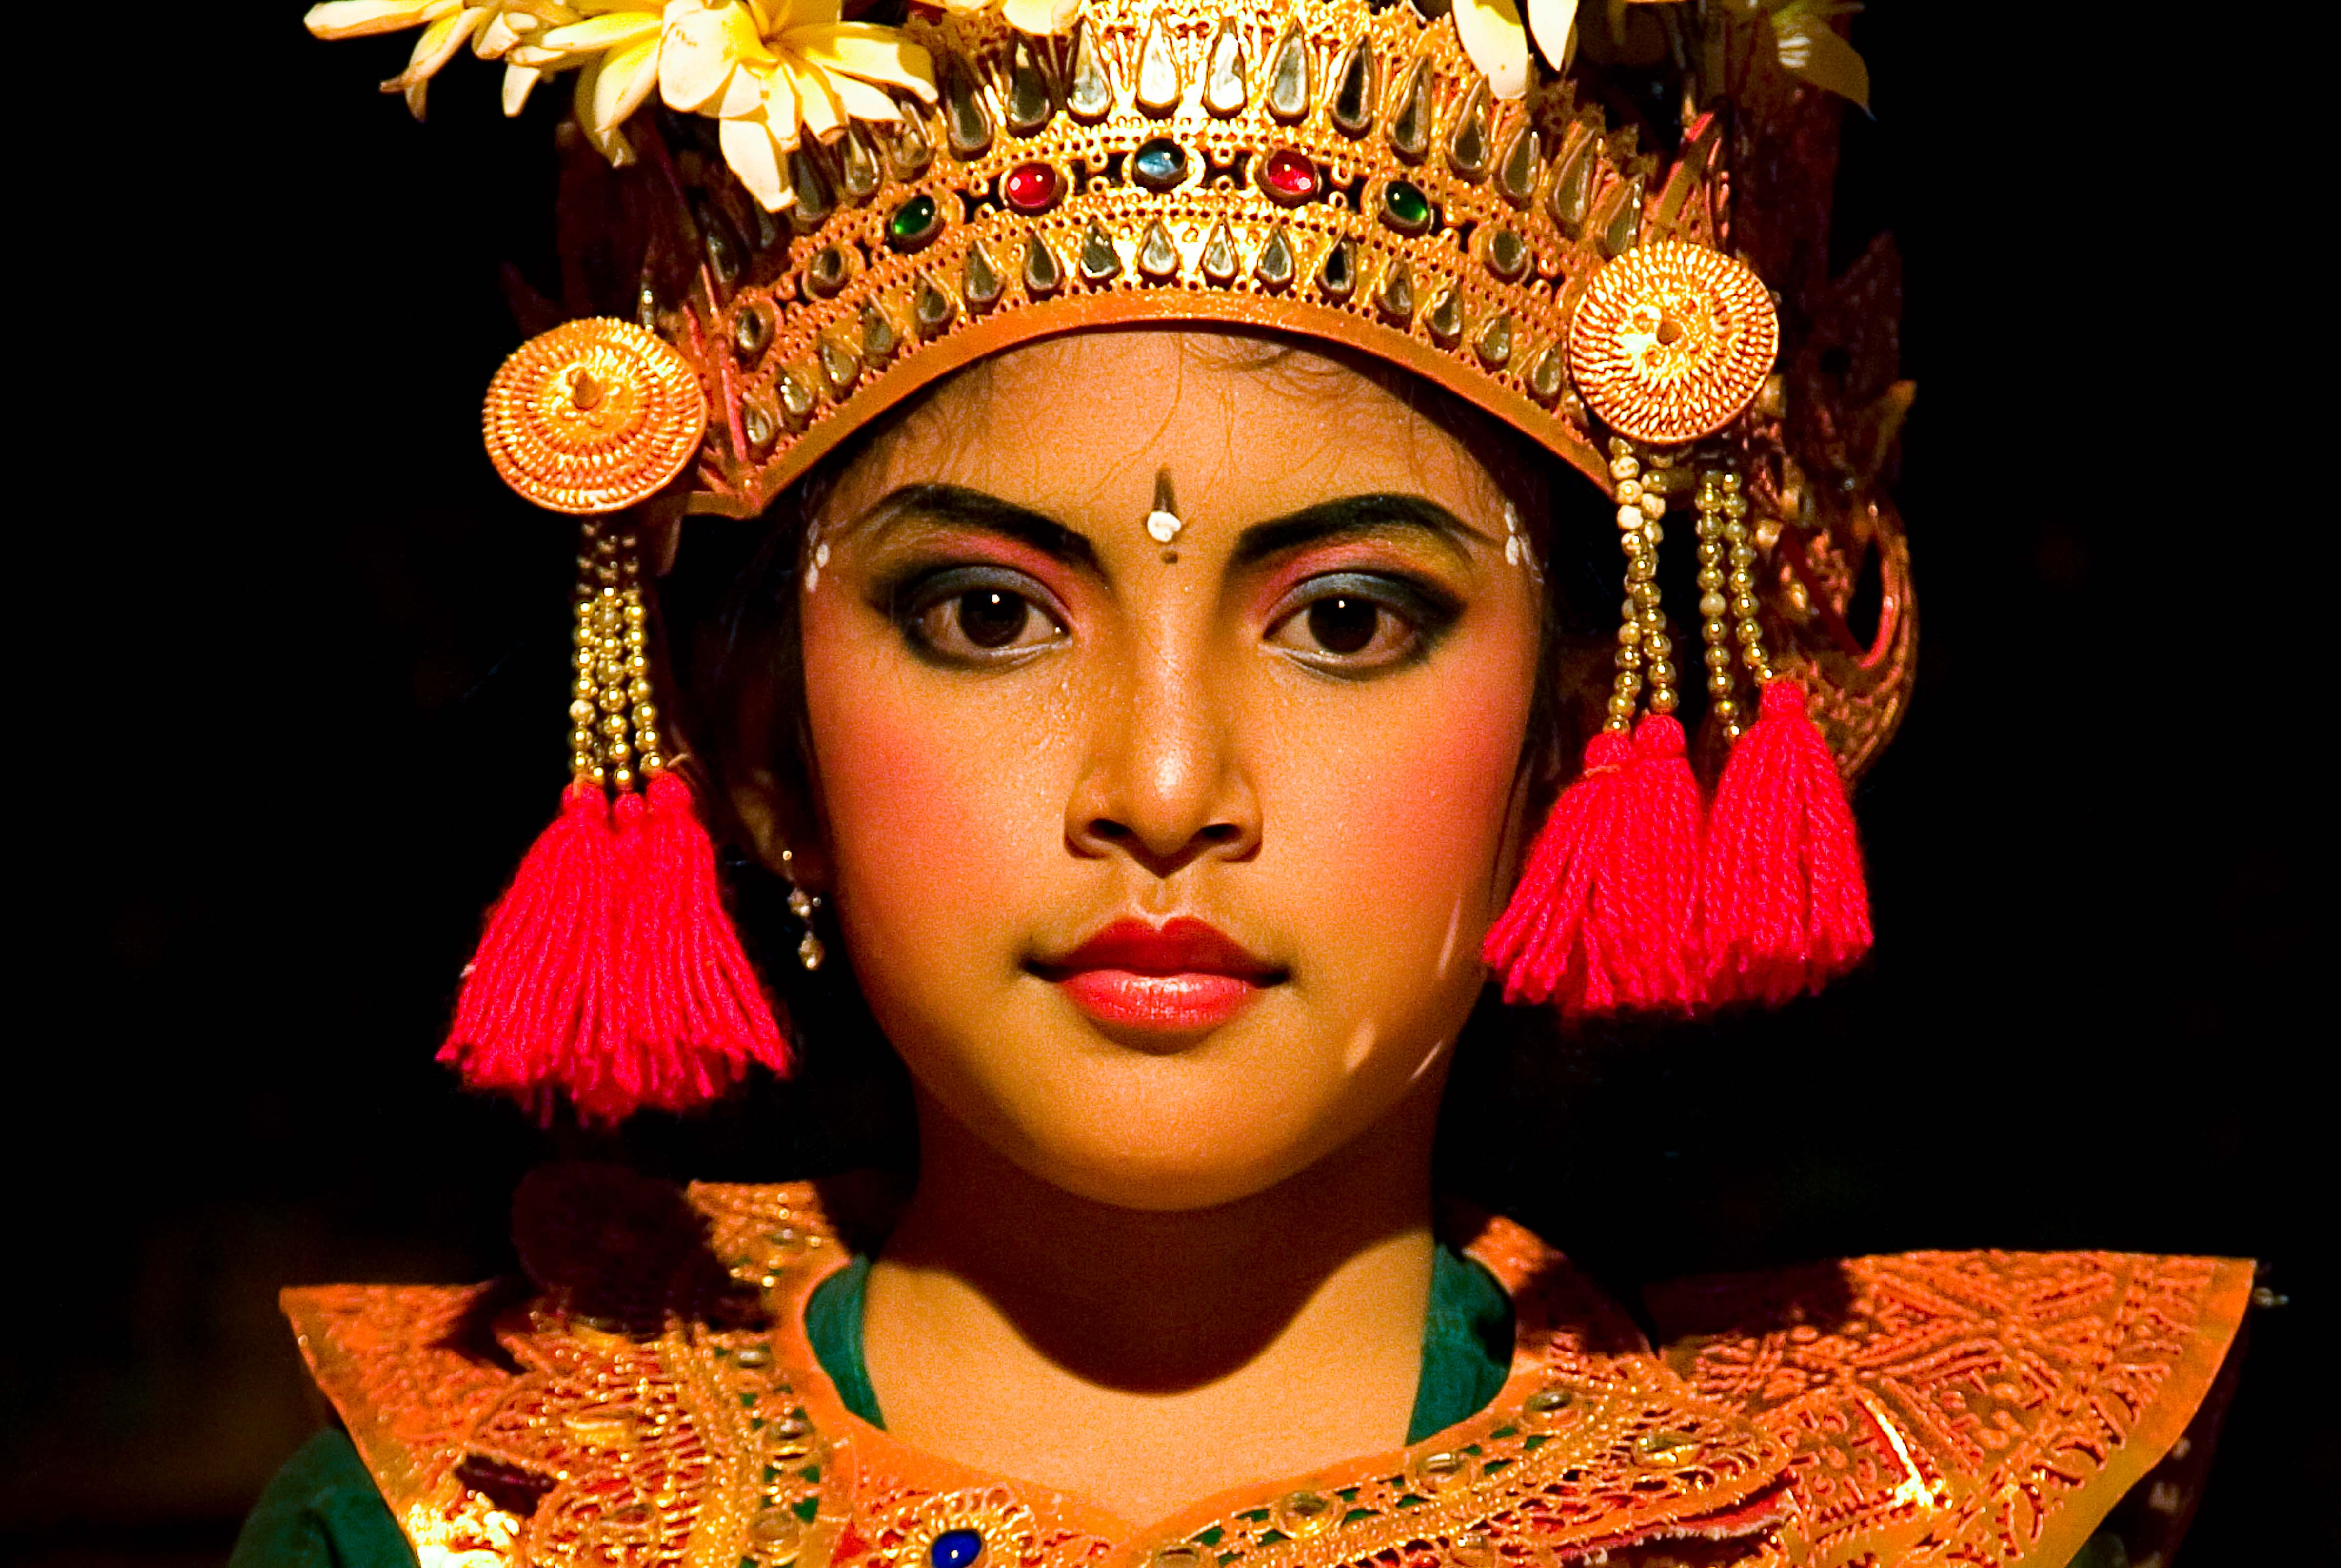 Indonesia, Bali, Young Dancer, 2005